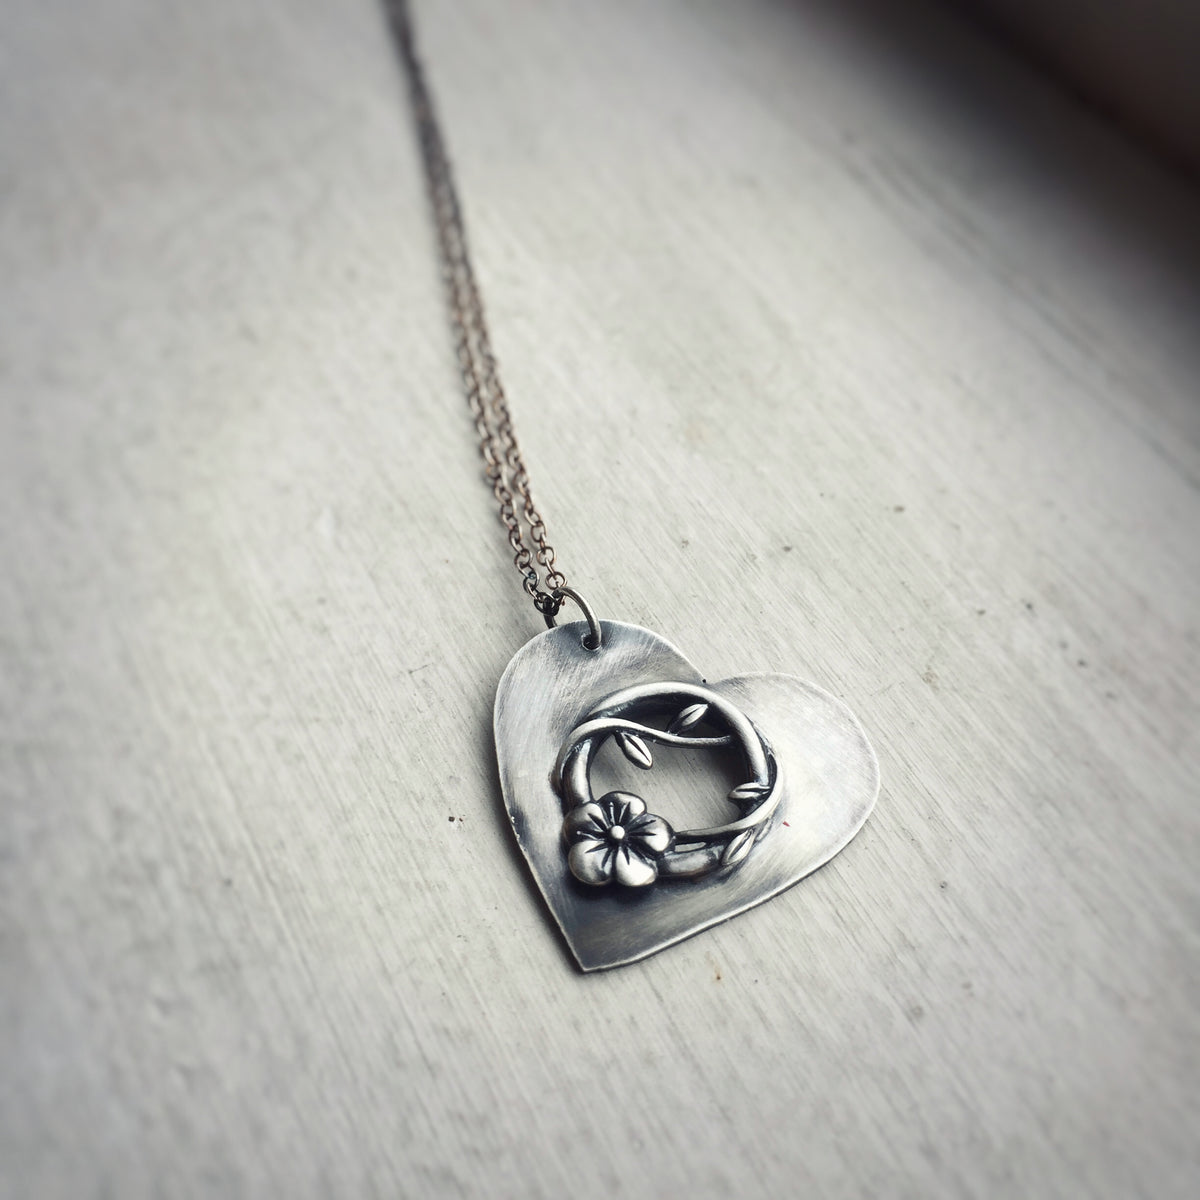 Small Heart Necklace with Vine and Flower